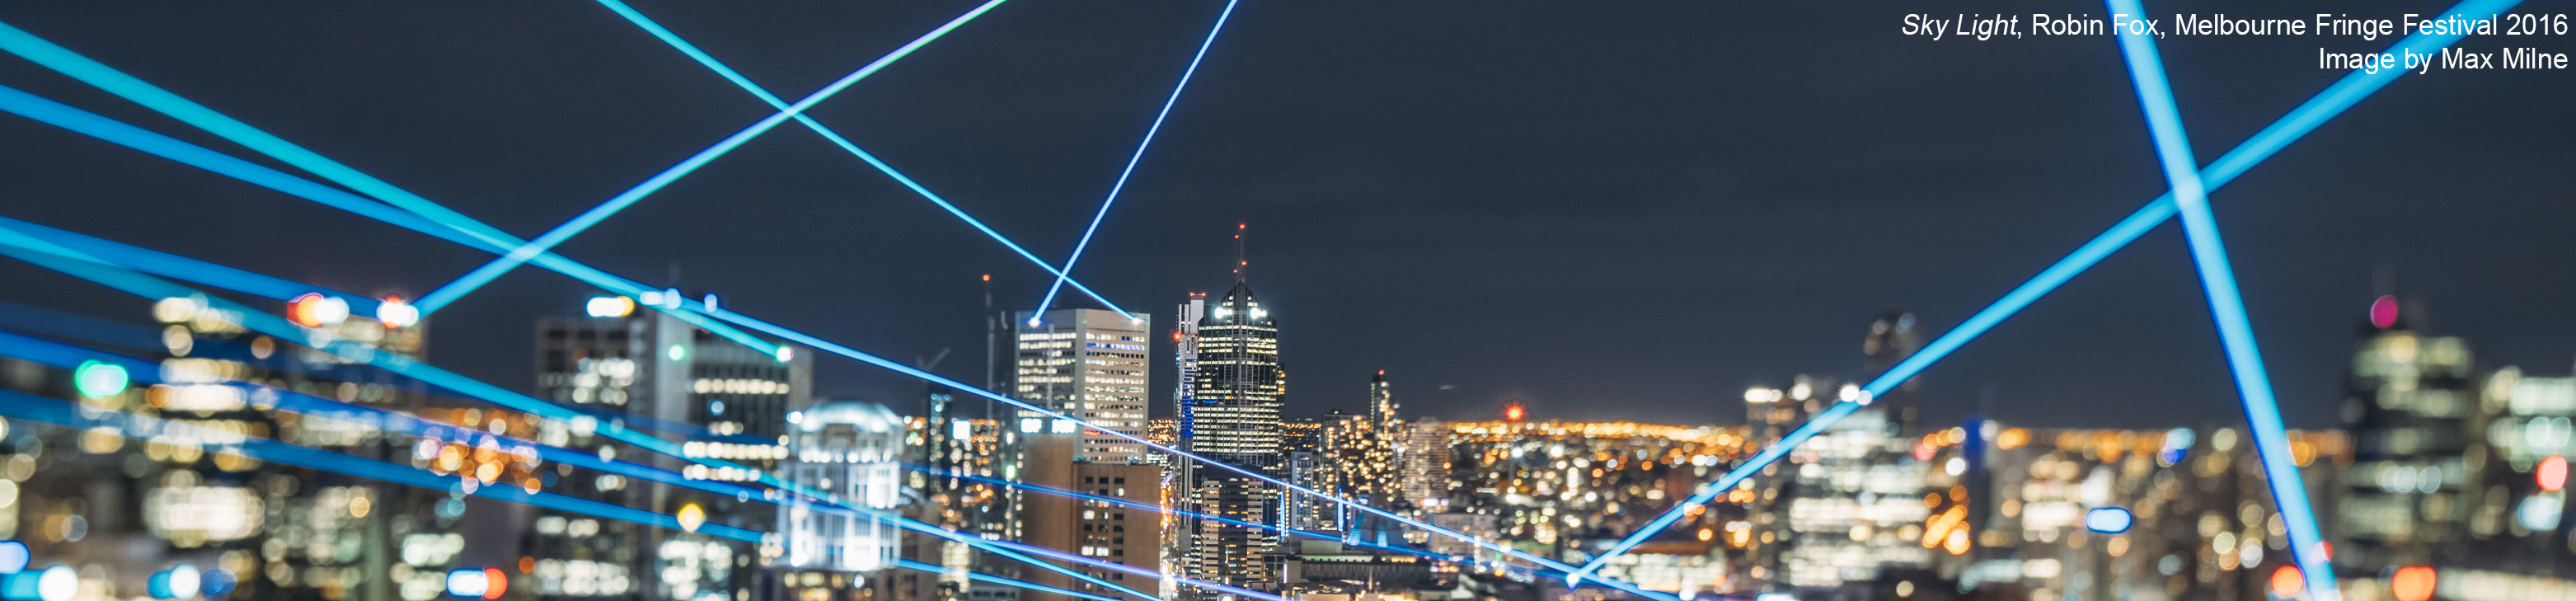 Blue laser beams shoot randomly between the tops of buildings in the night-time skyline of Melbourne's CBD